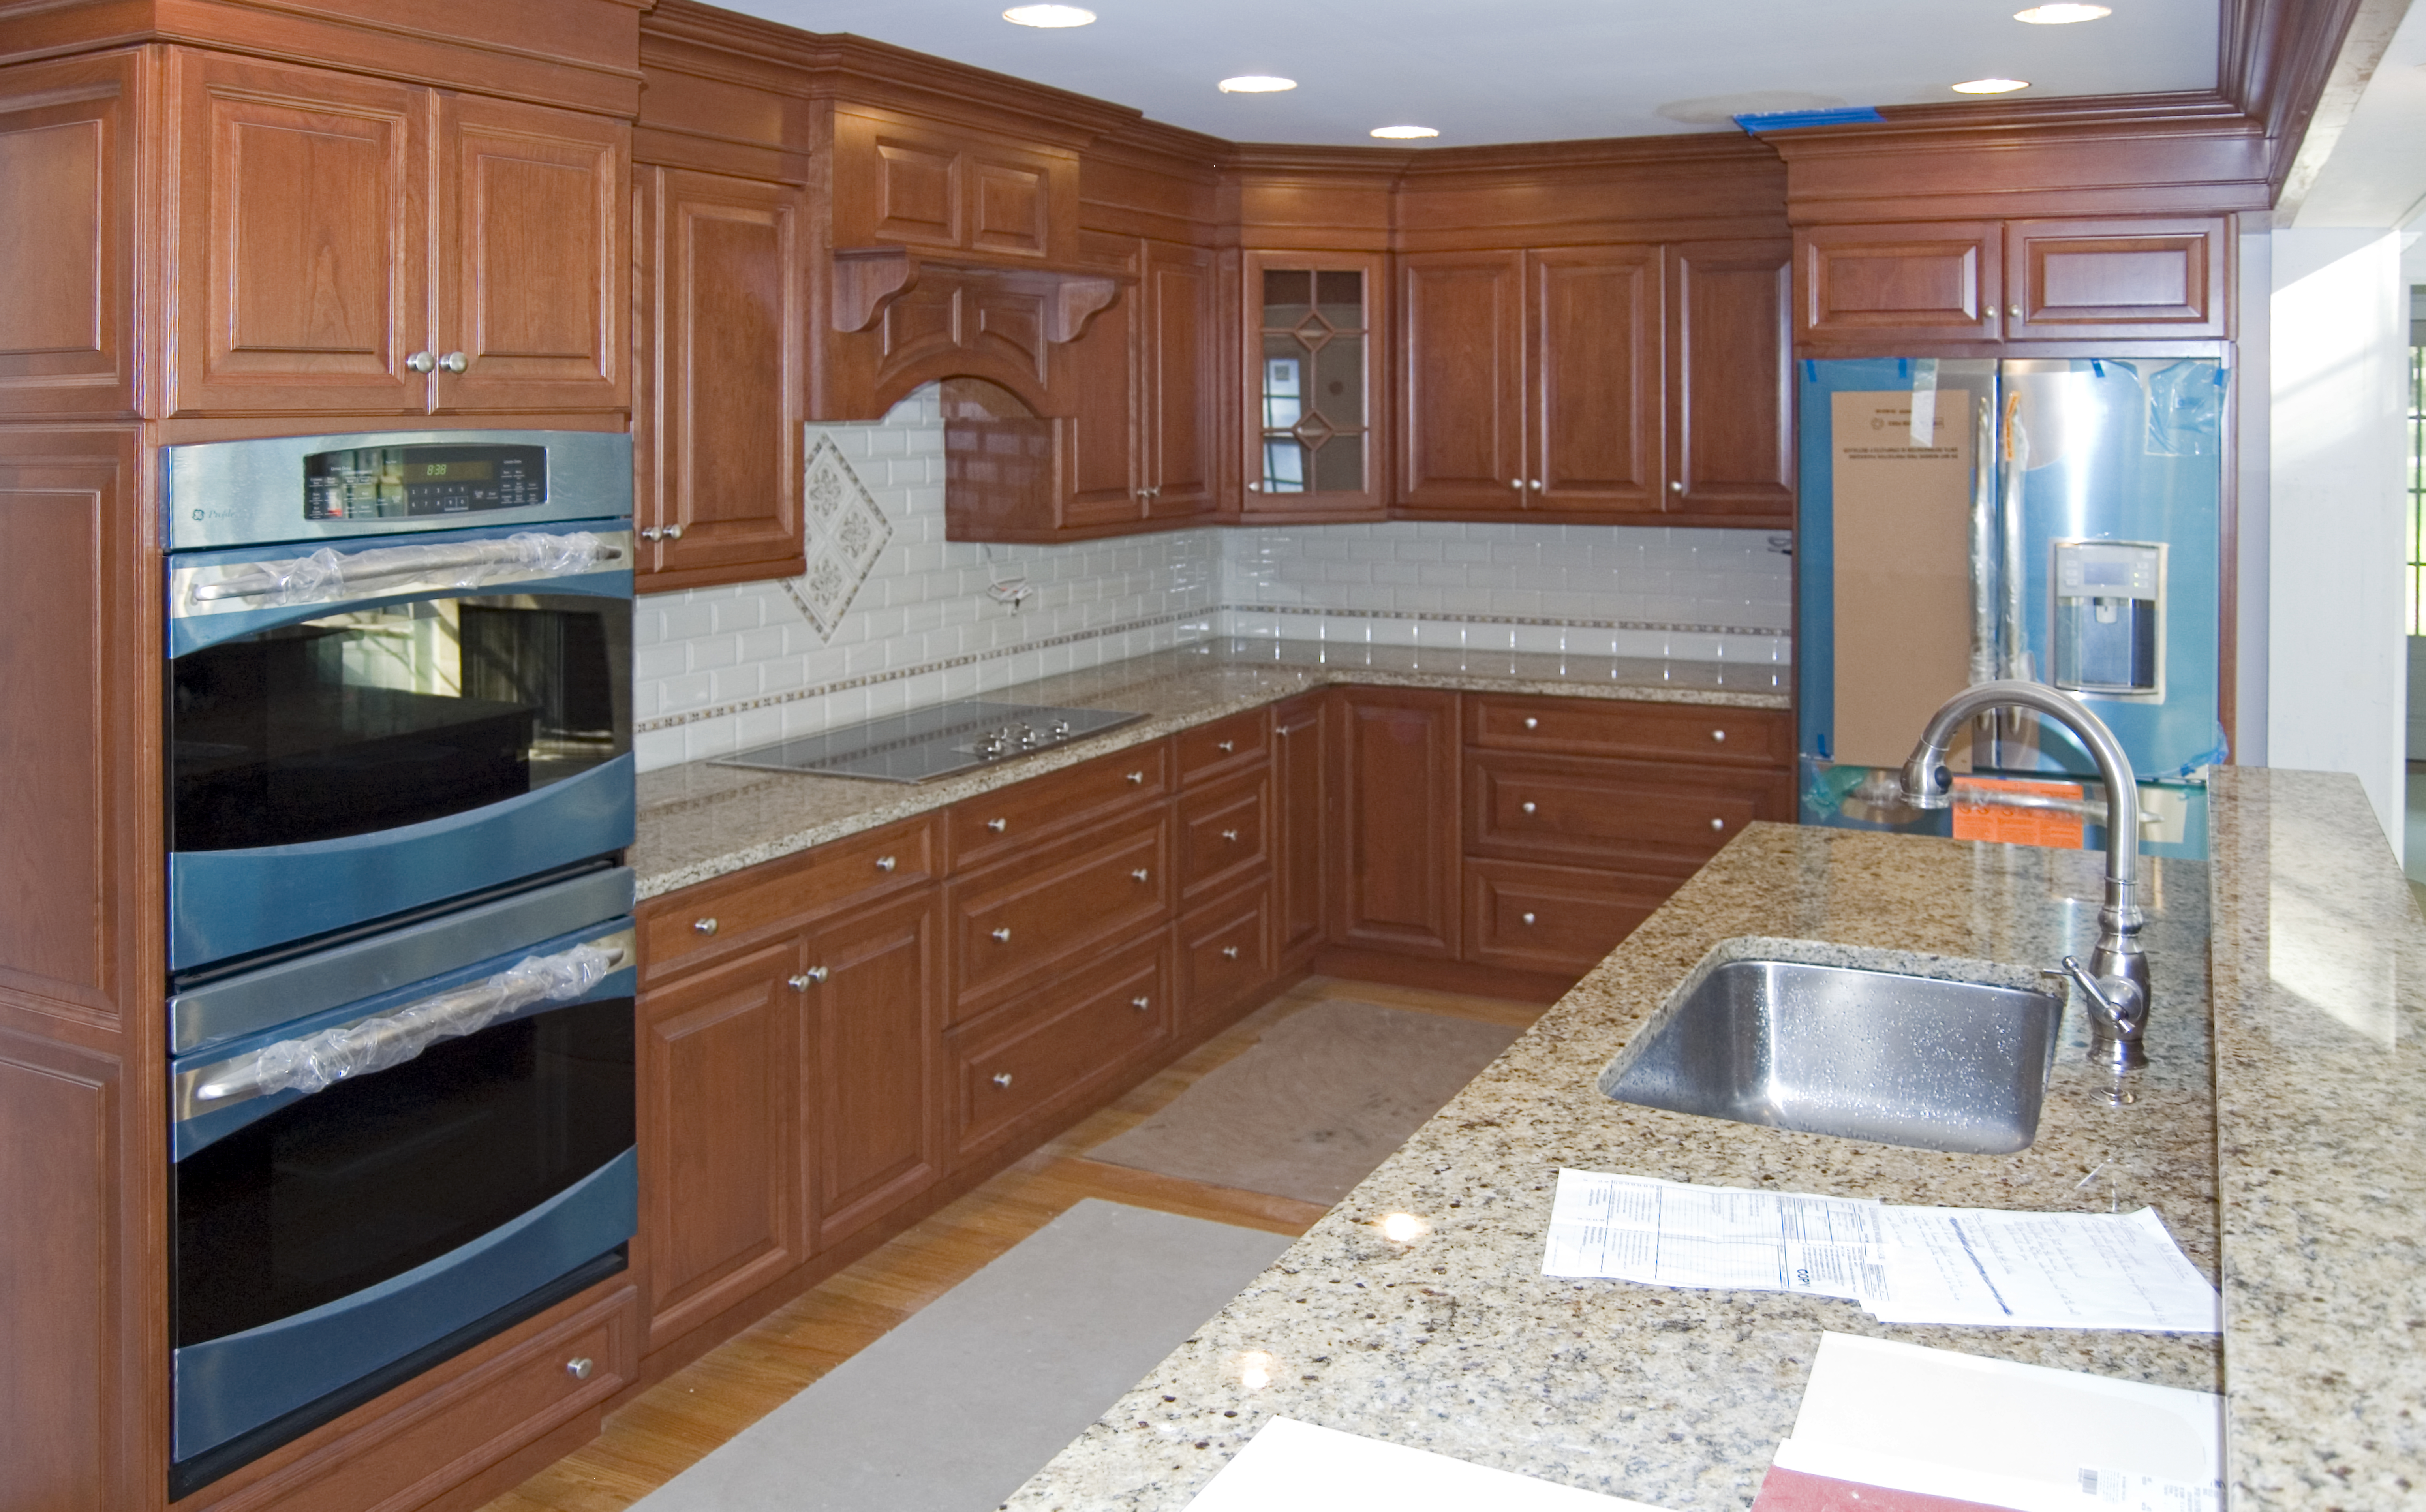 Kitchen After Renovation with Granite/Marble Countertops